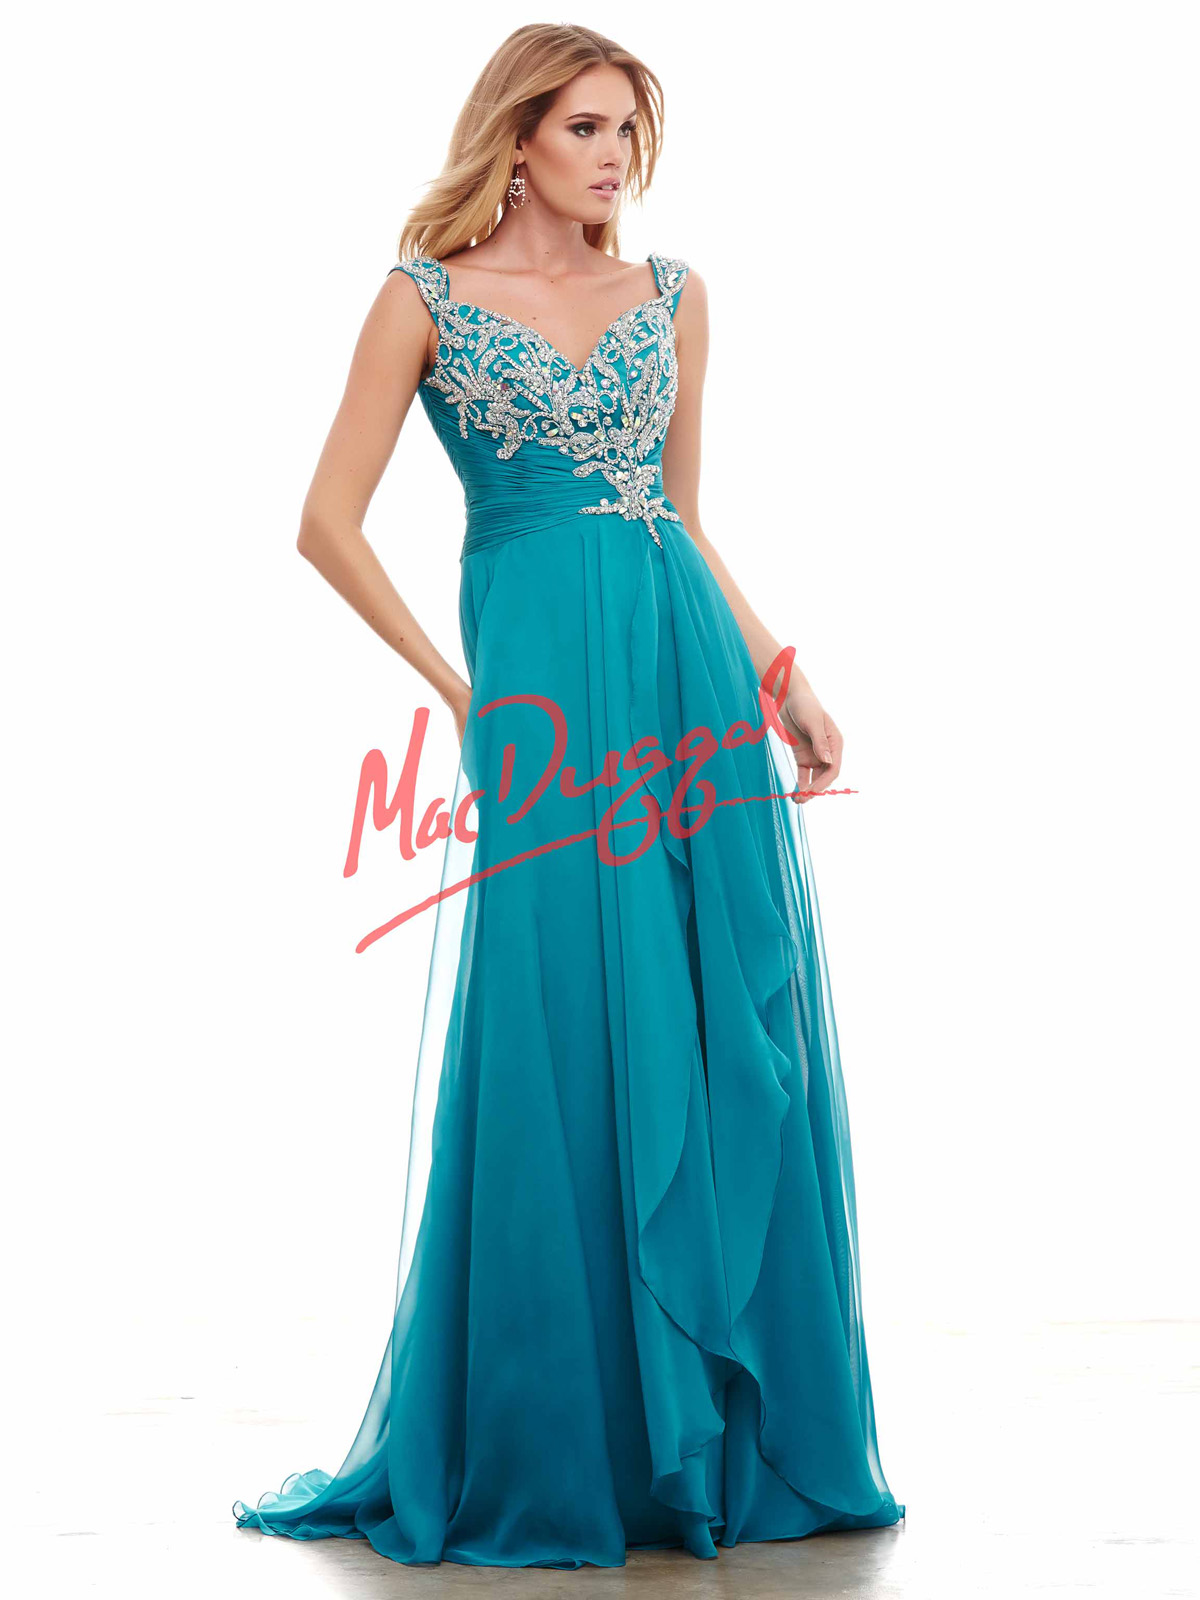 Modest Prom Dresses Stone Mountain - Holiday Dresses